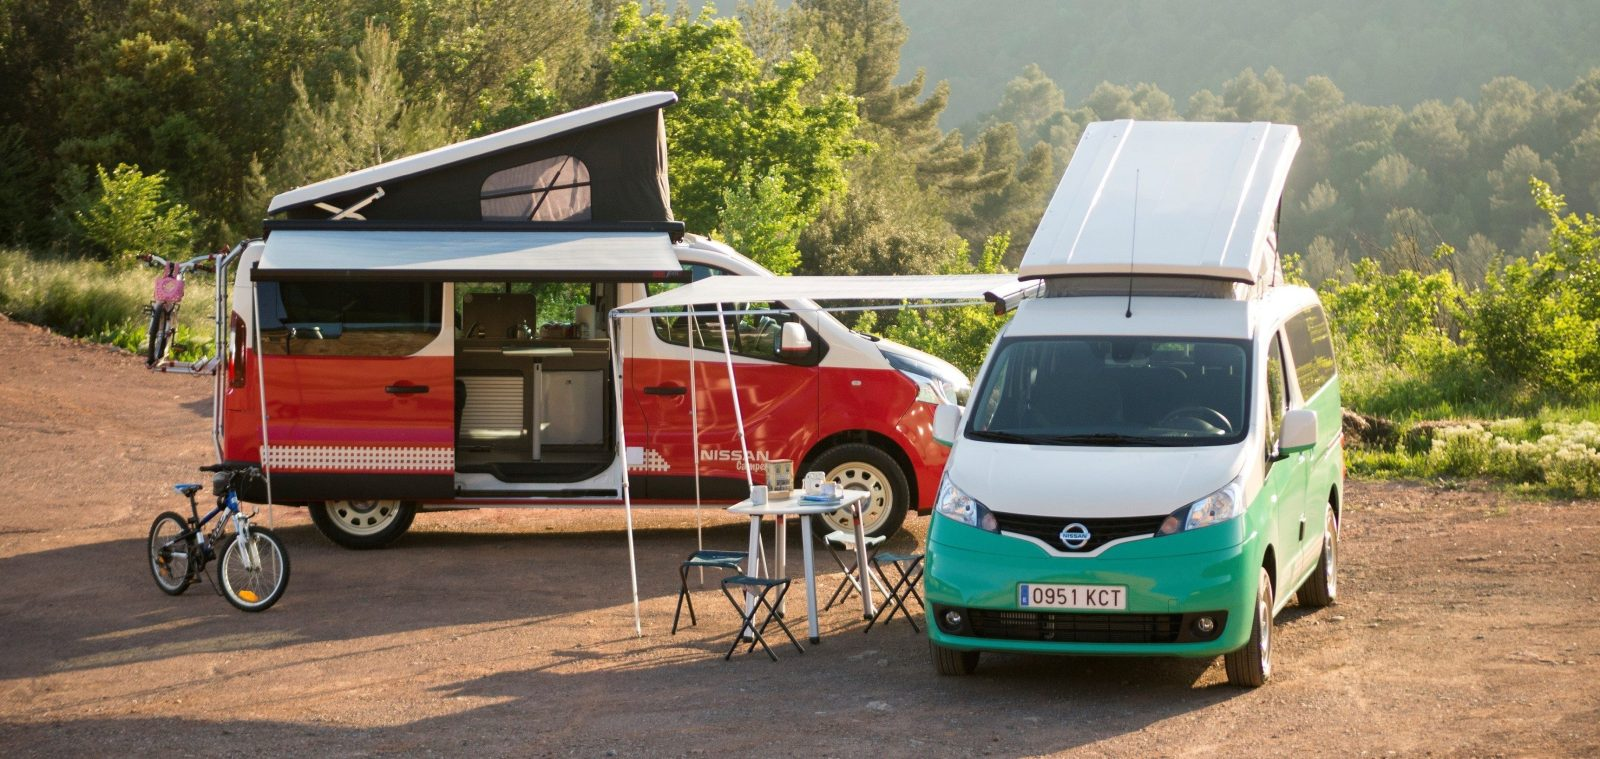 Nissan Unveils All Electric Camper Based On The E Nv200 Van